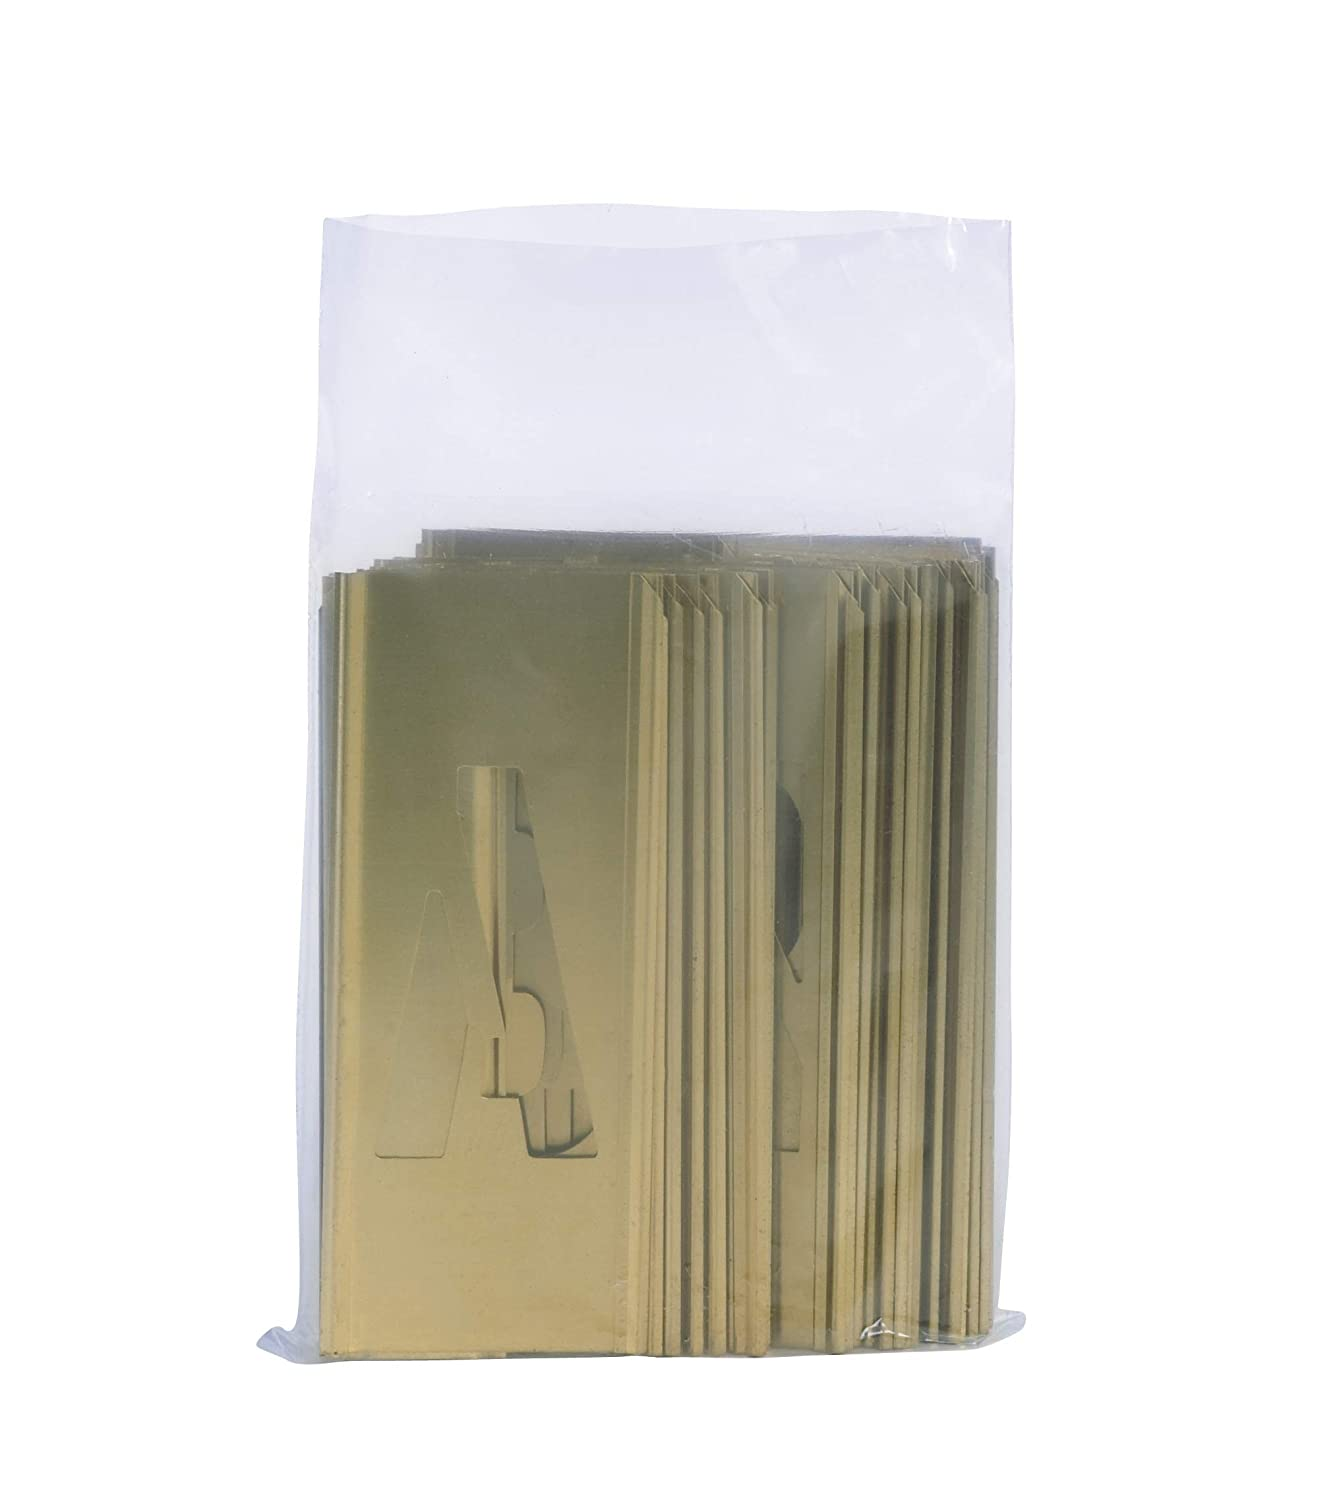 Aviditi PB445 Poly Flat Bag Clear 2 mil Thick Case of 1000 10 Length x 6 Width